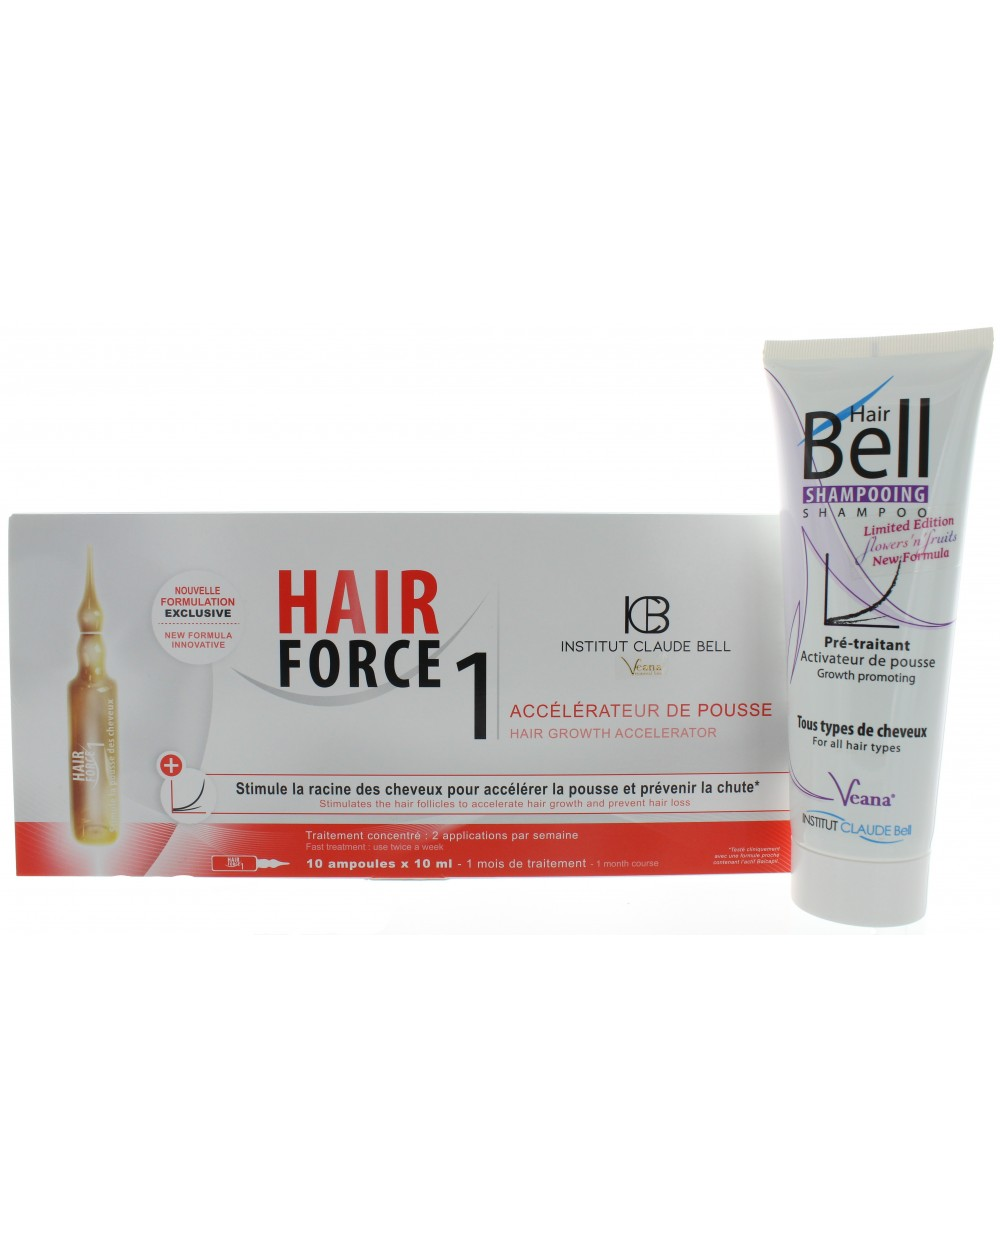 HairBell Shampoo flowers'n'fruits + Hair Force One - Serum Ampullen